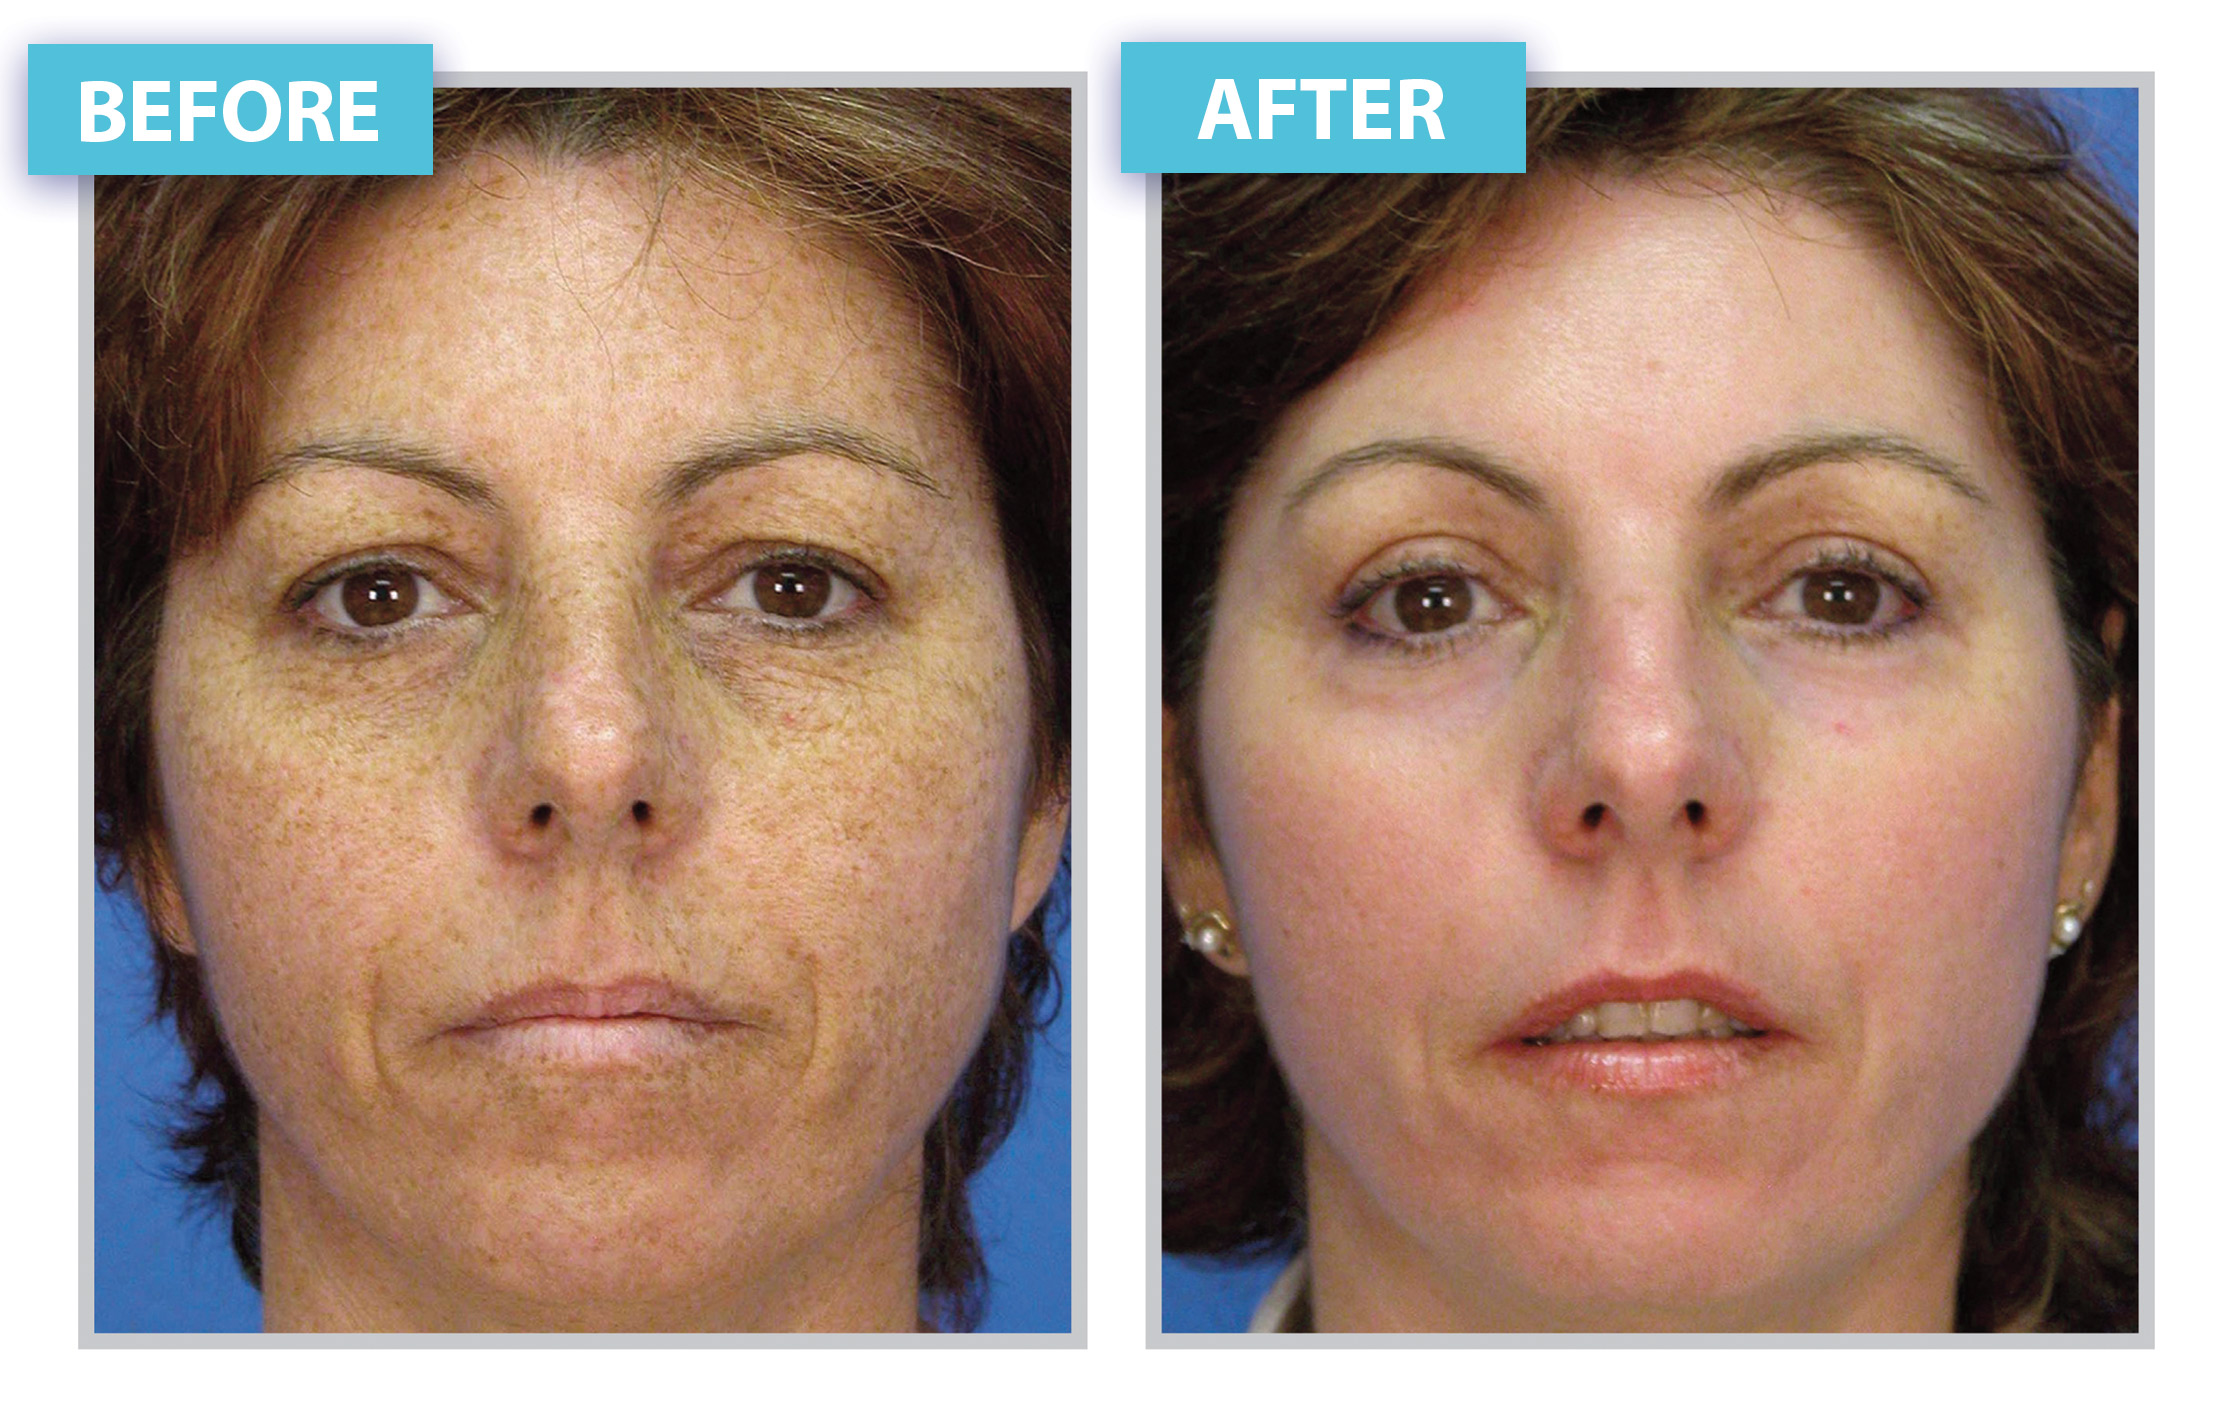 Before and After Laser Skin Rejuvenation